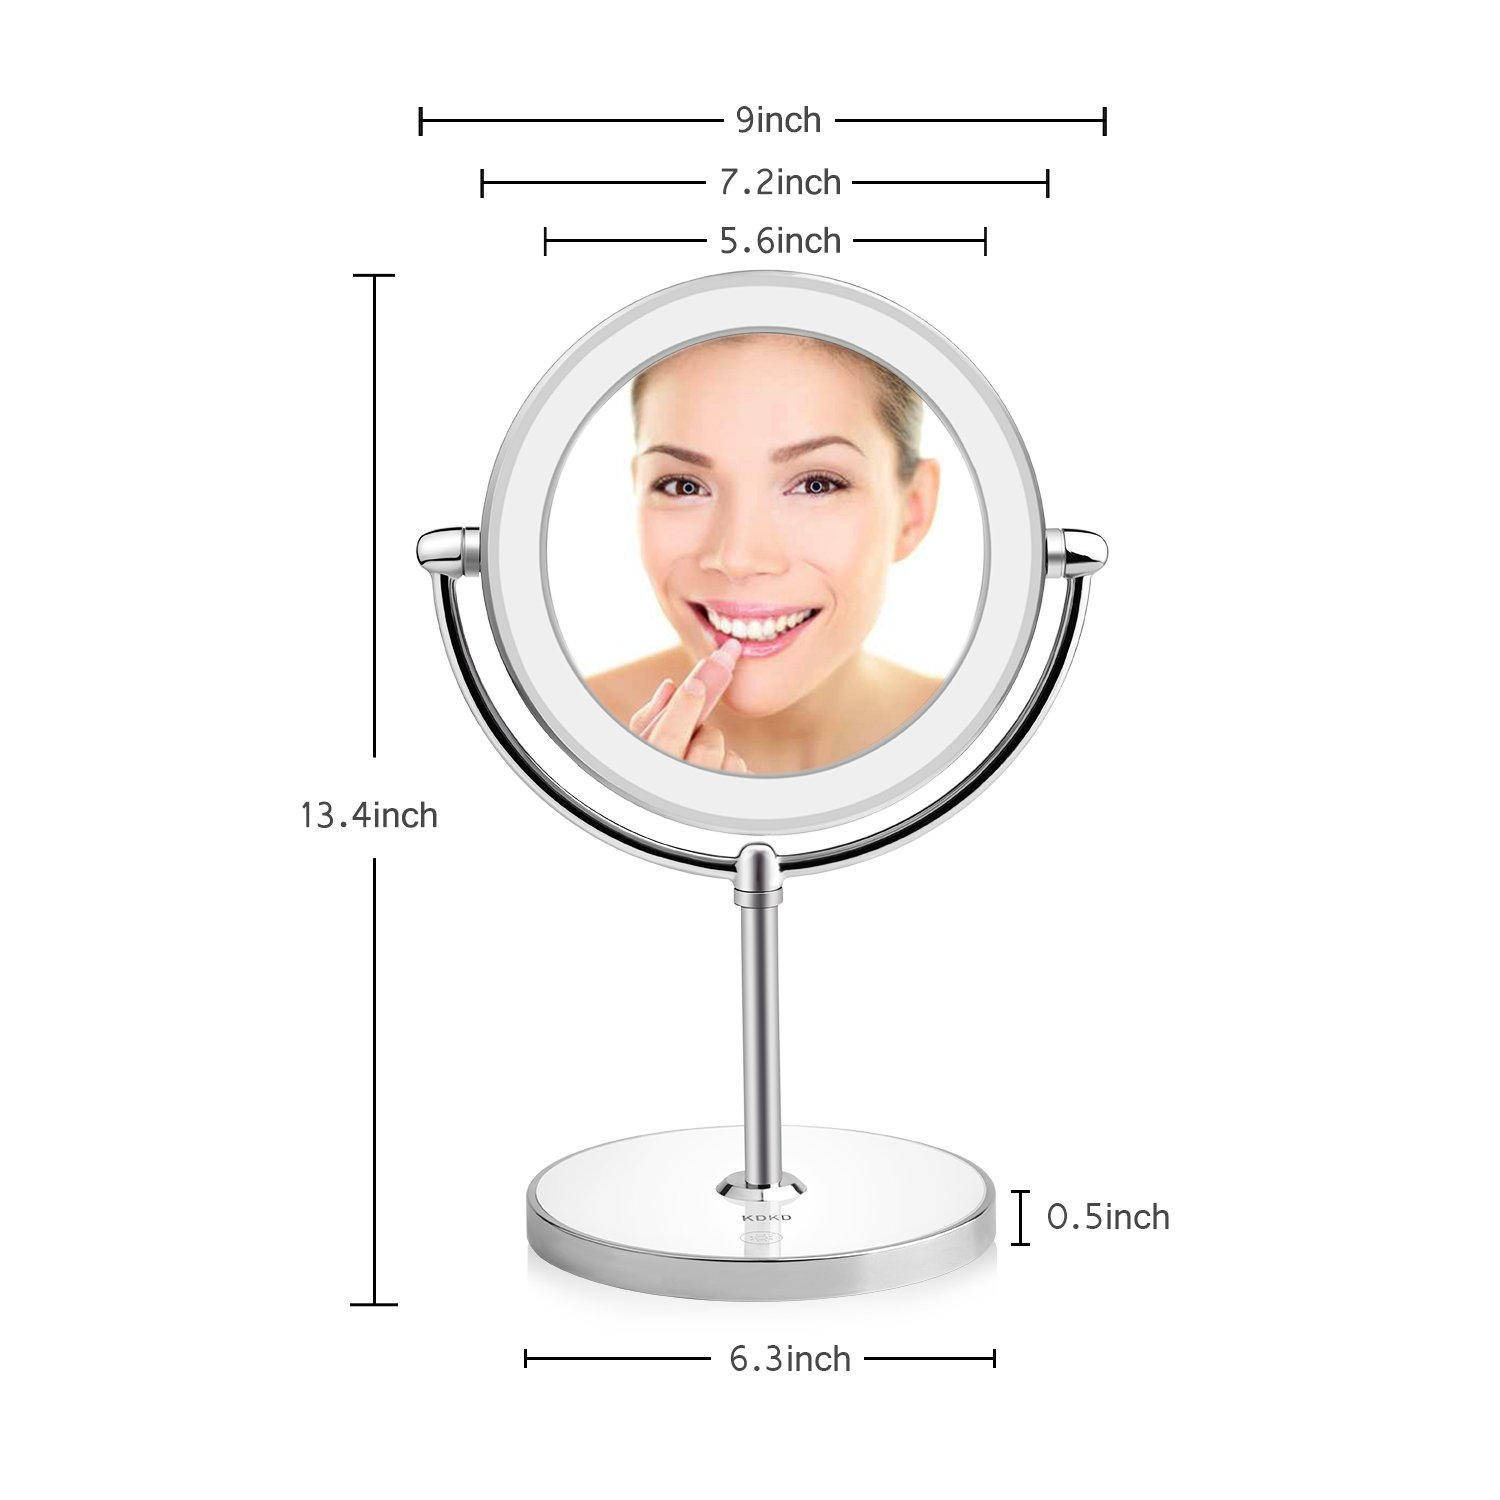 KDKD Lighted Makeup Mirror 1X 7X Magnification Double Sided Round Shape with Base Touch Button, Cordless and Rechargeable by KDKD (Image #3)